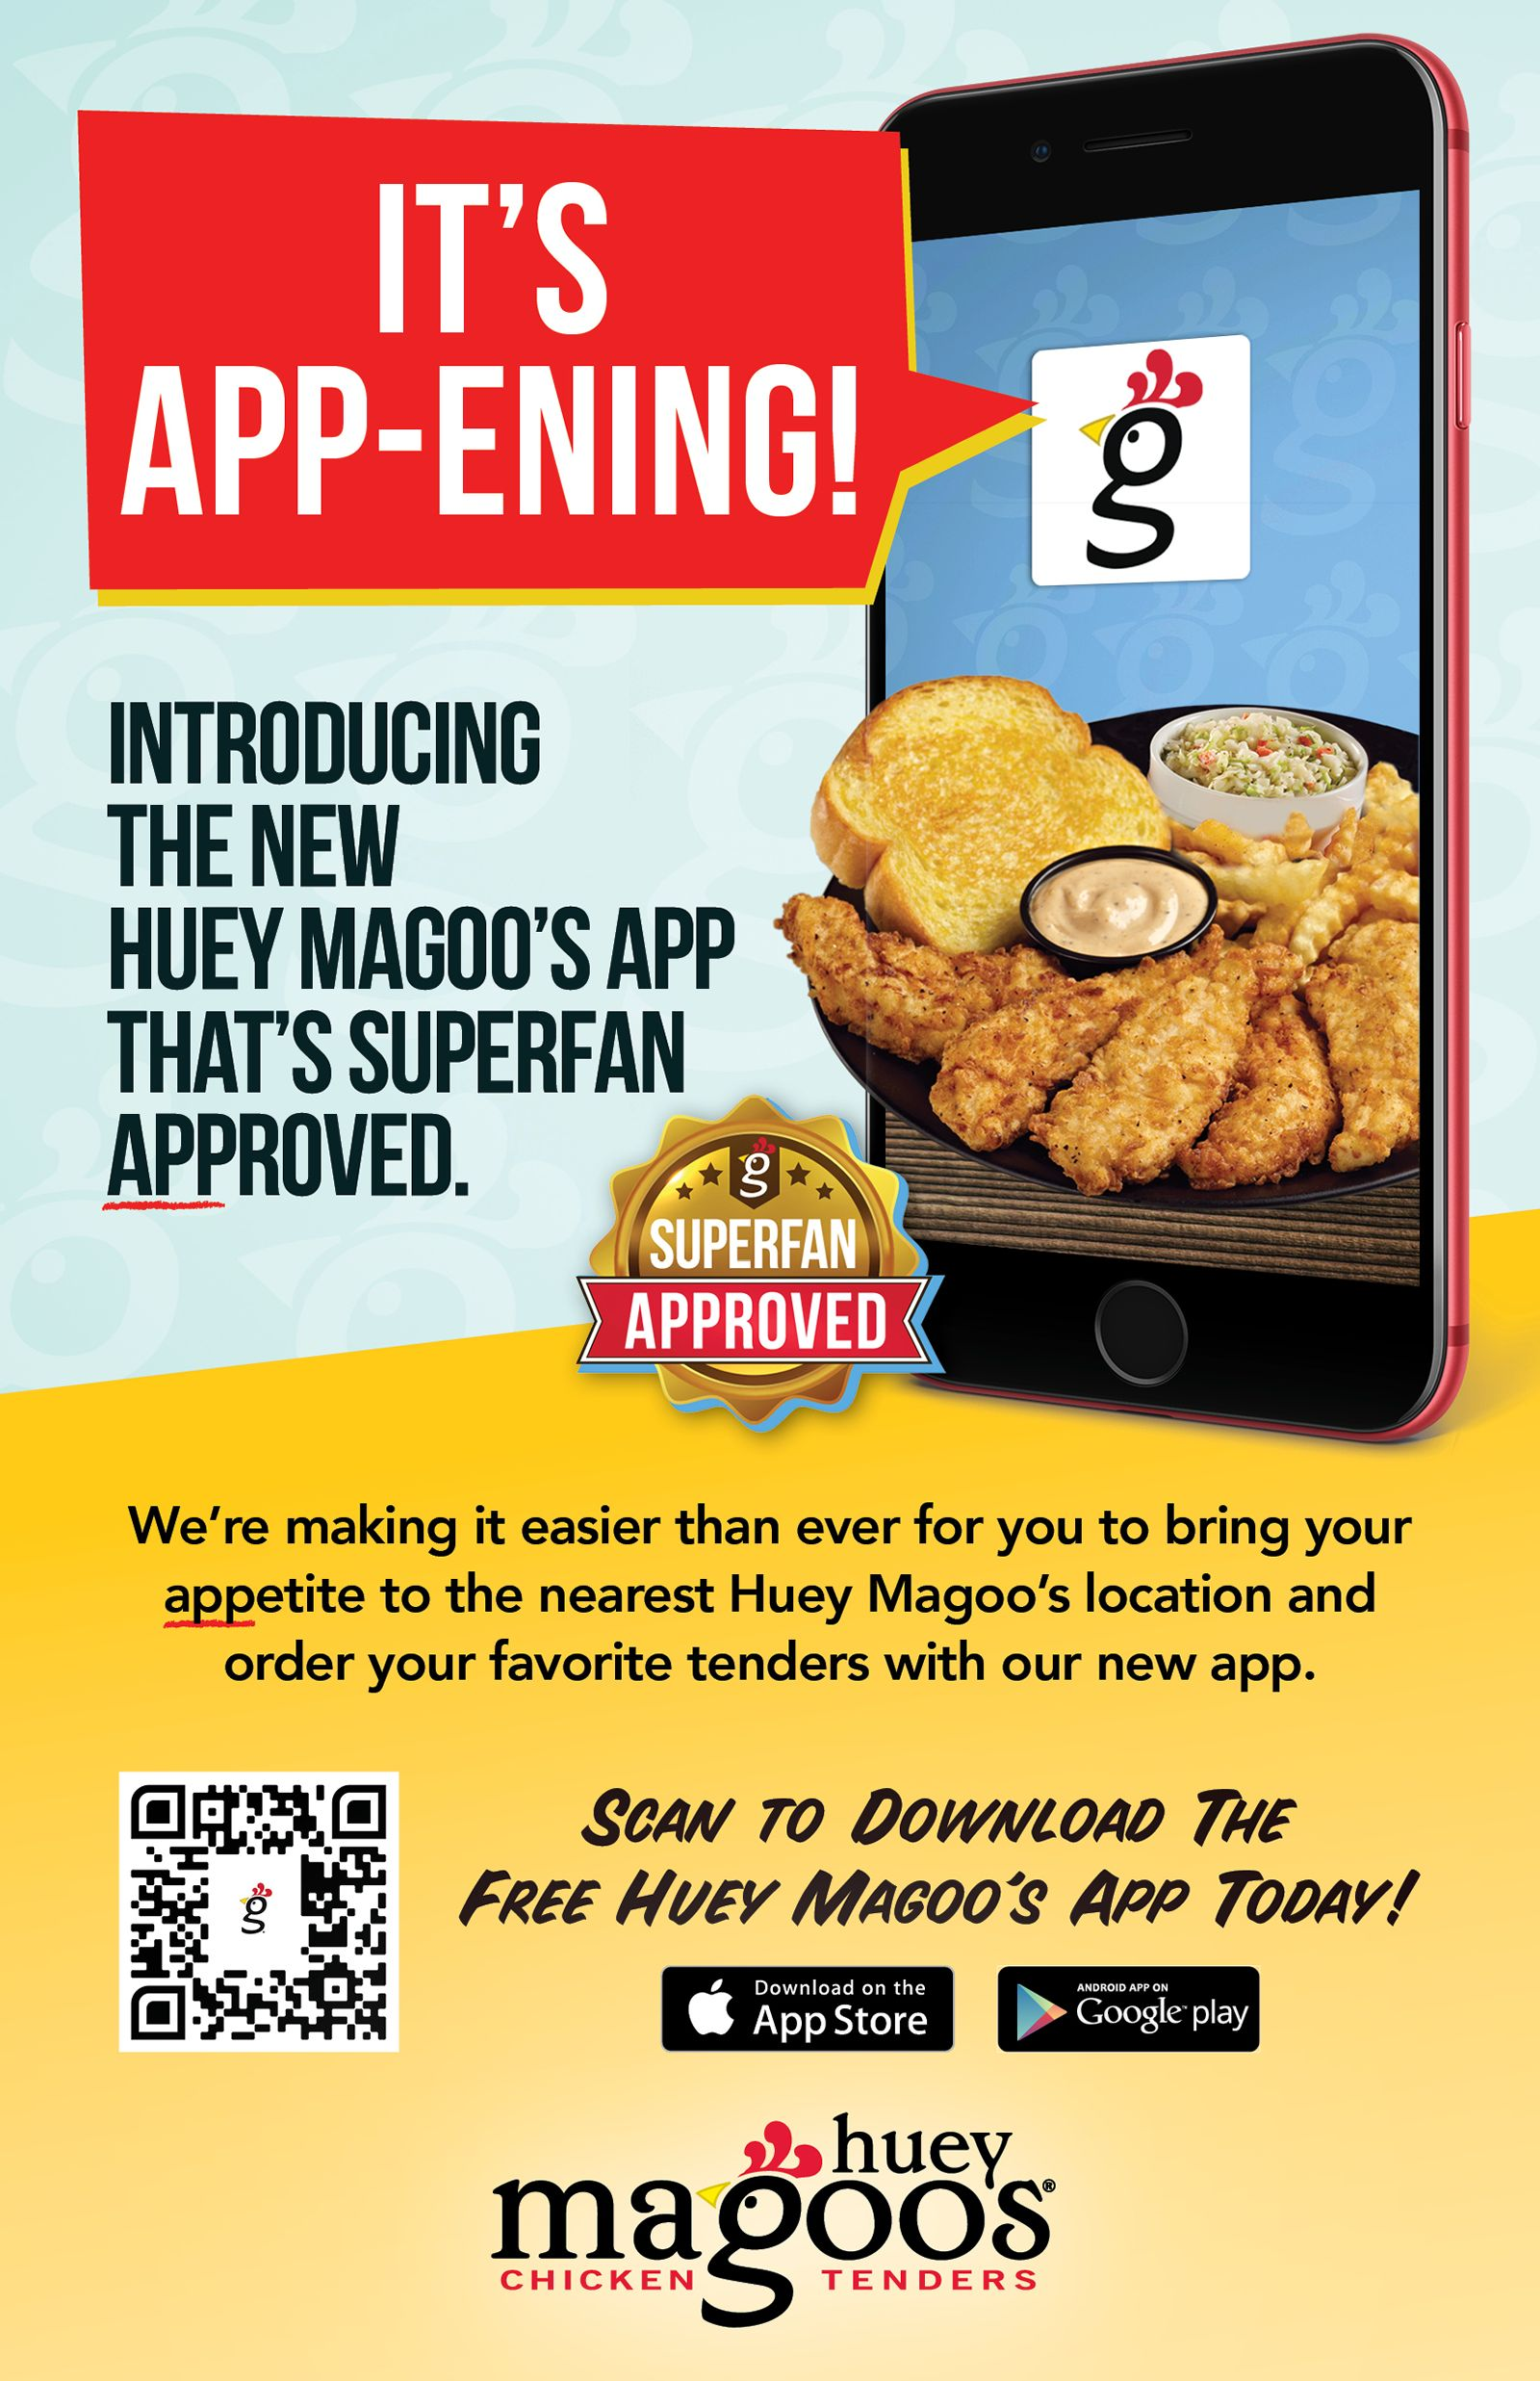 Huey Magoo's Chicken Tenders Introduce New Free Mobile App